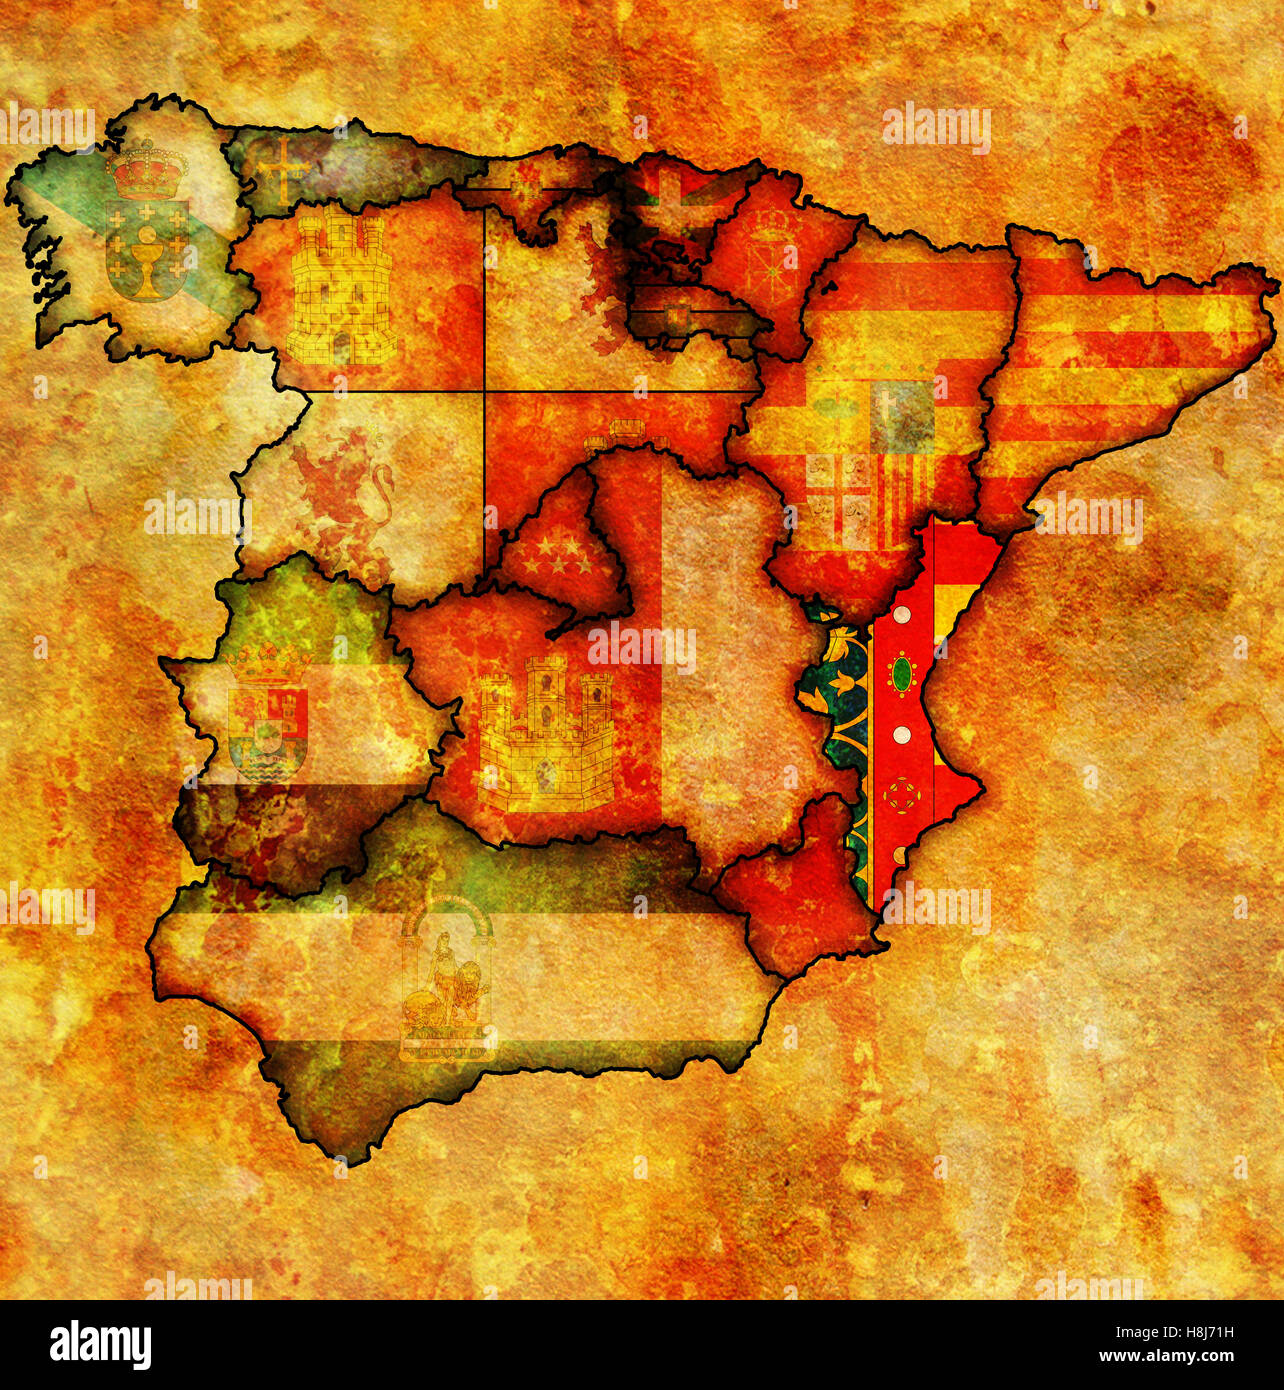 Map Of Spain Valencia Region.Valencia Region On Administration Map Of Regions Of Spain With Flags